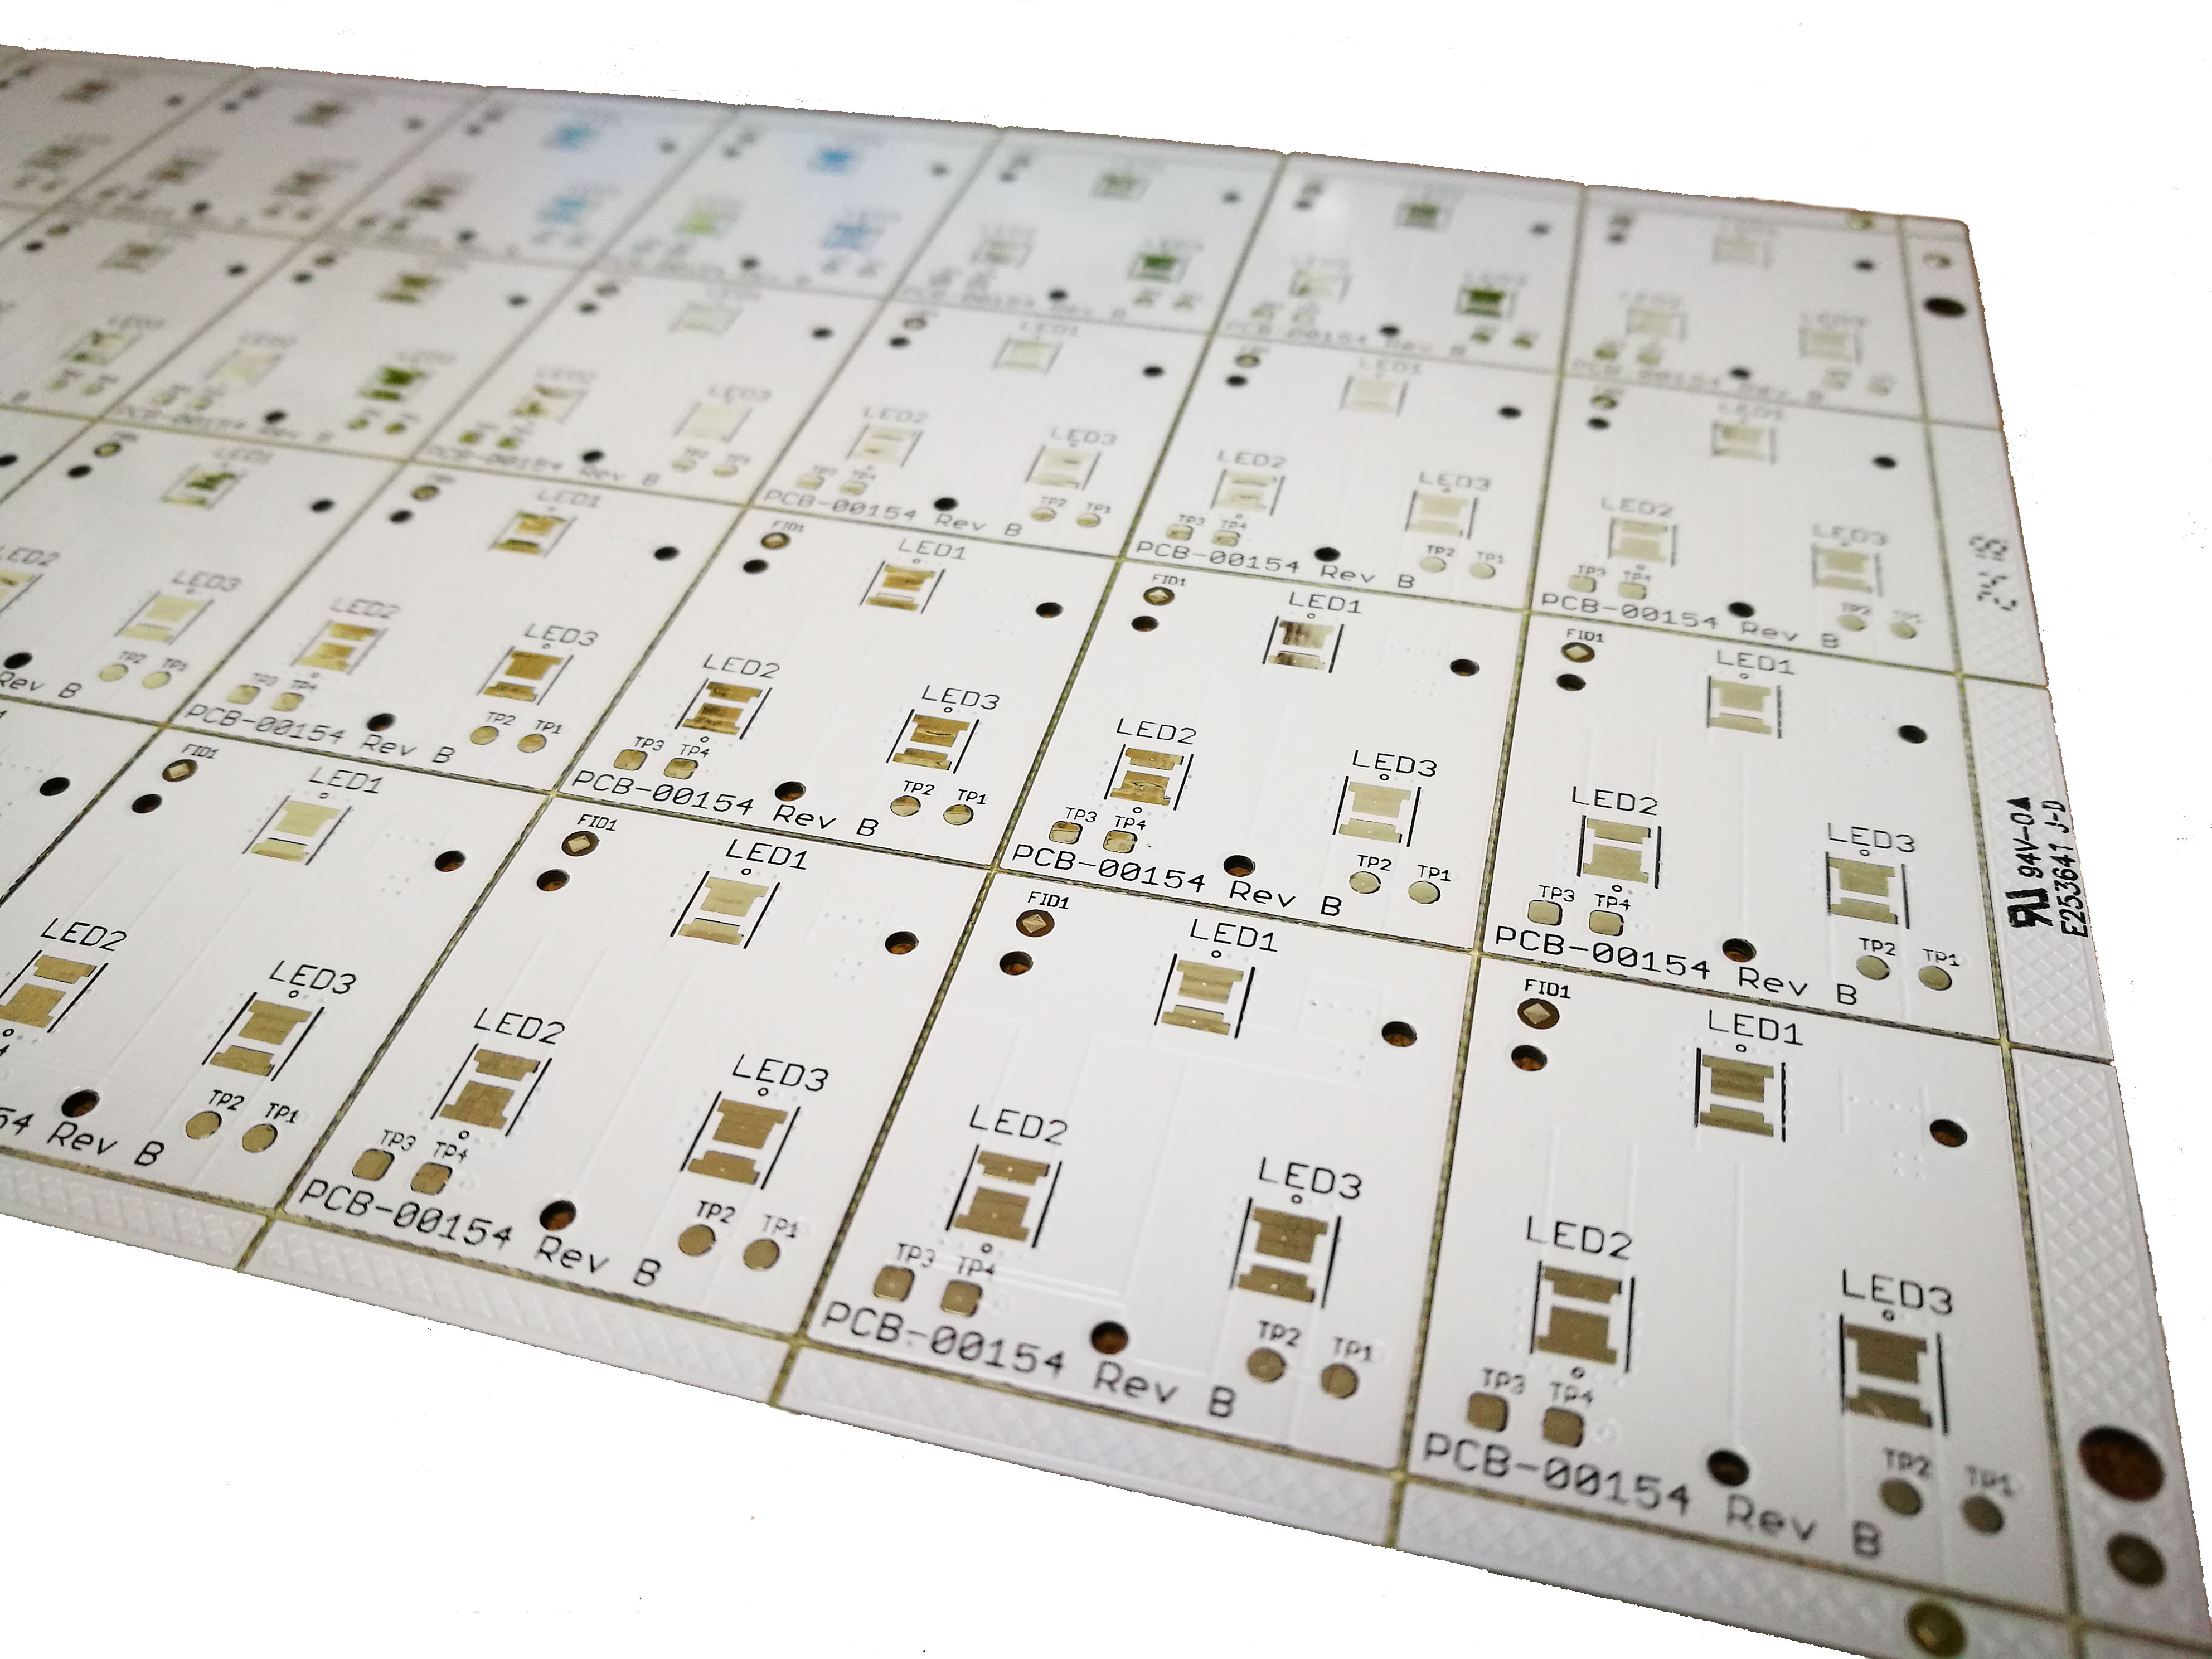 2L FR-4 PCB with white sold mask